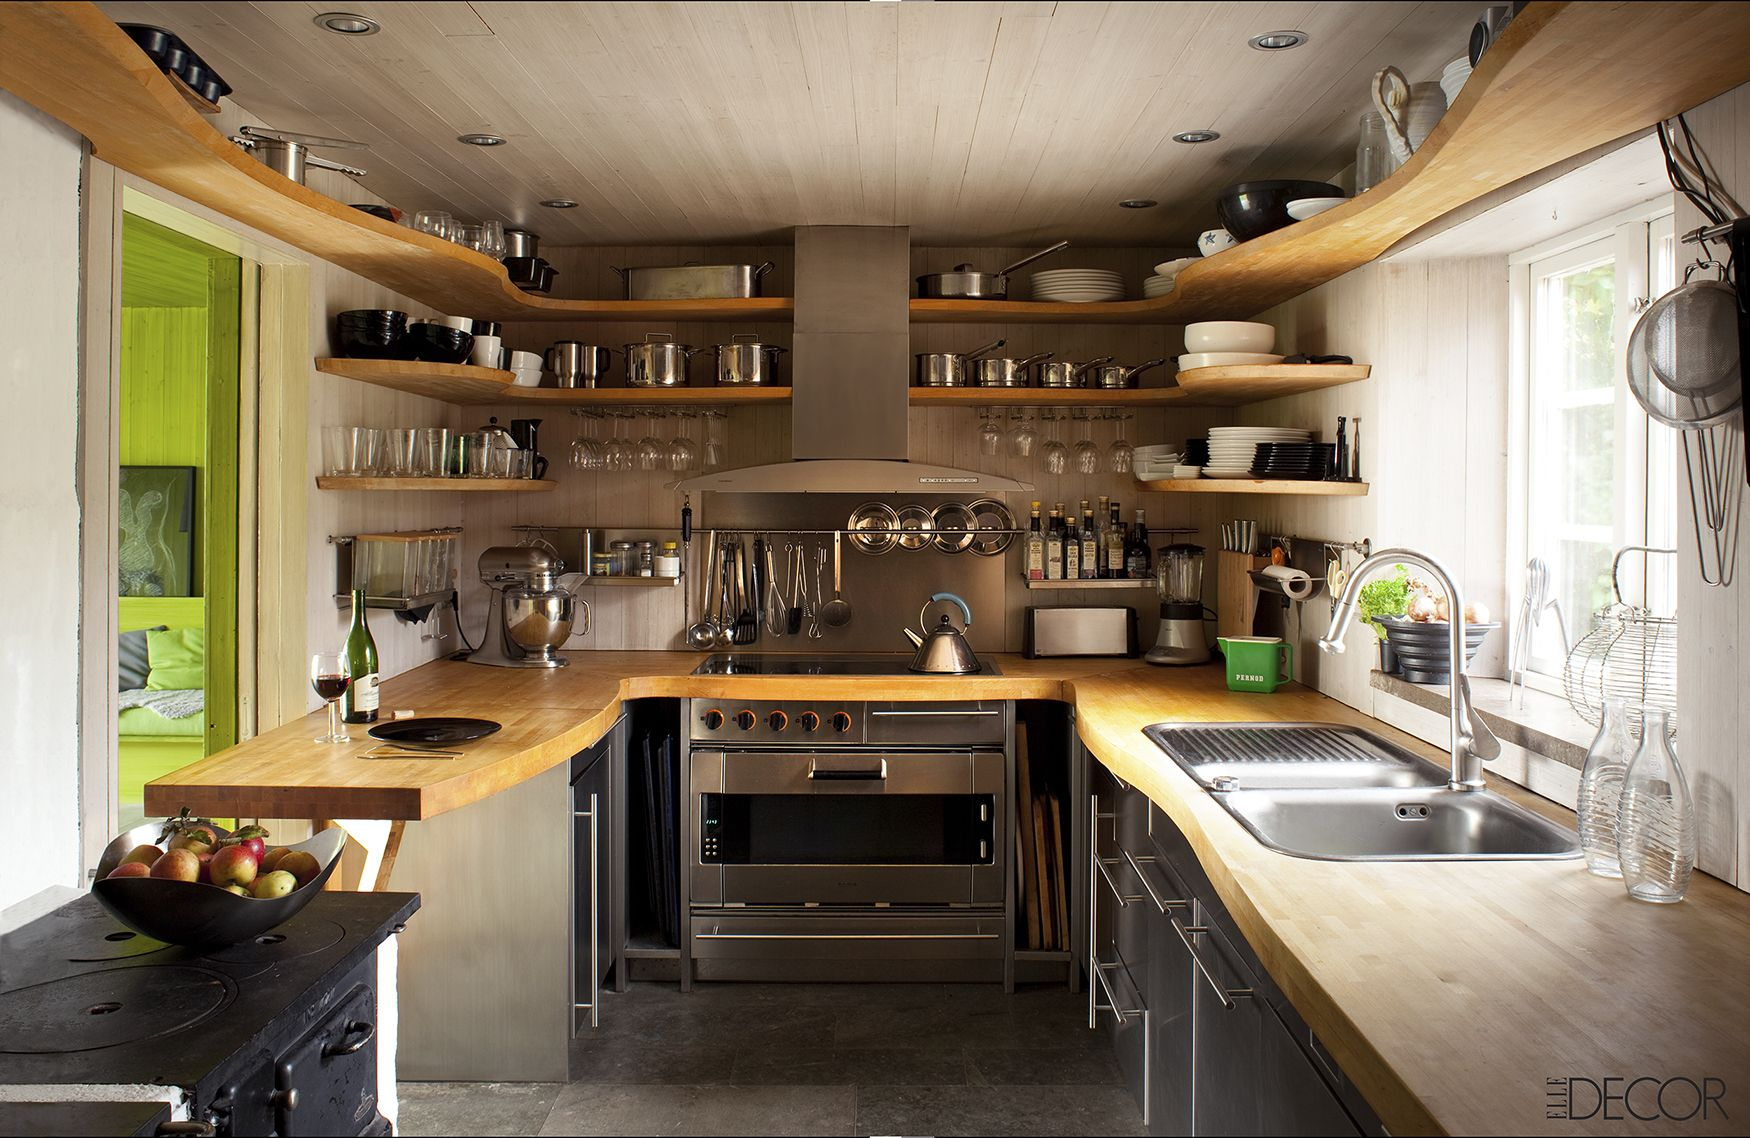 design kitchen.  50 Small Kitchen Design Ideas Decorating Tiny Kitchens